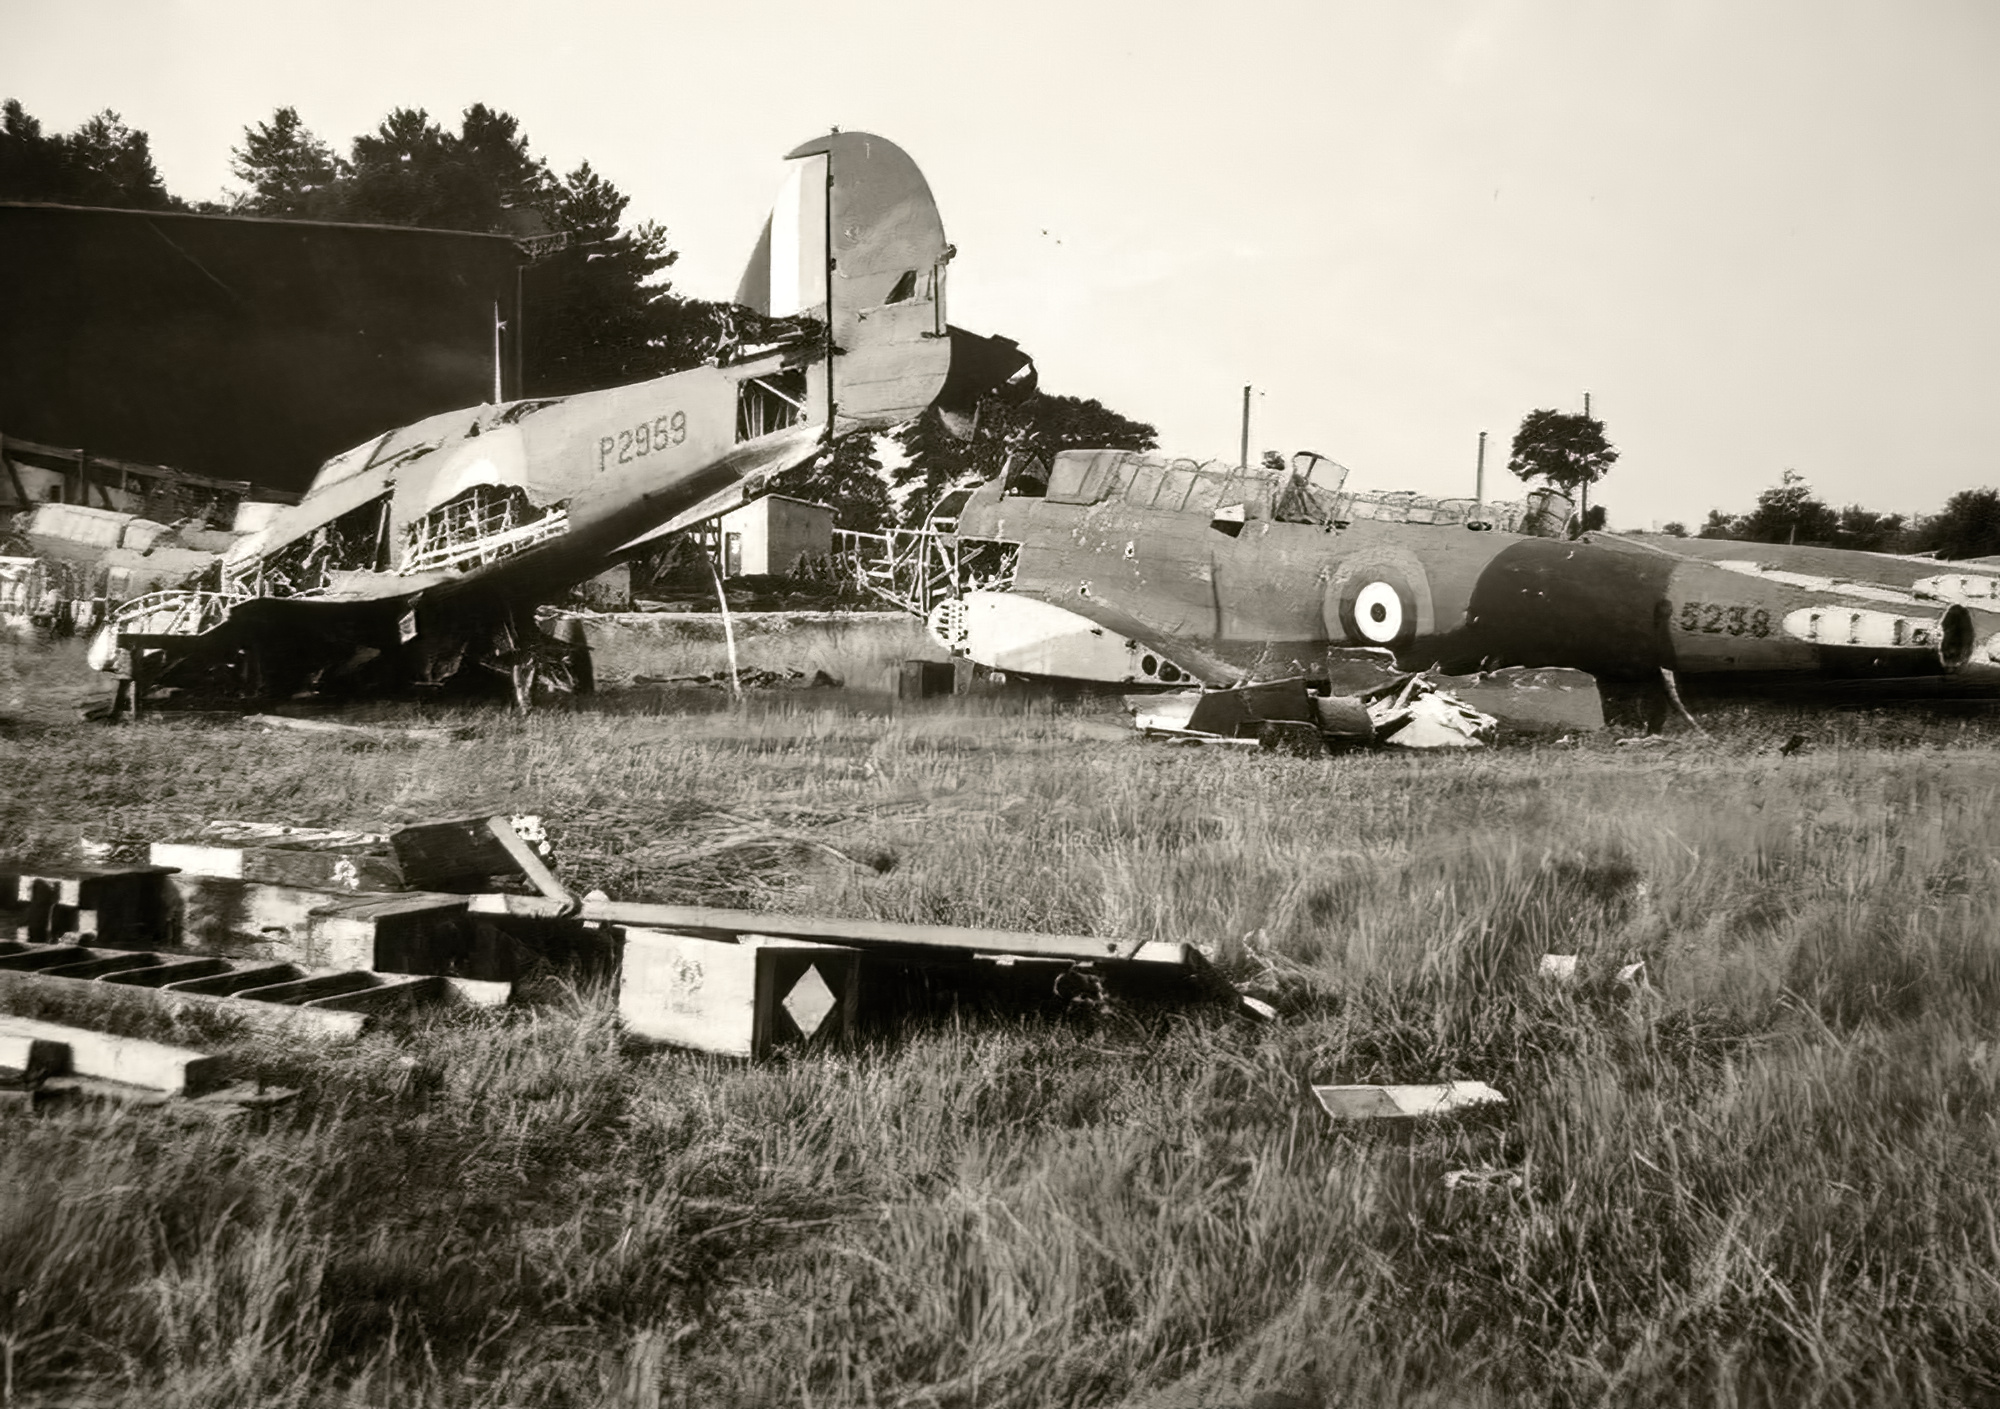 RAF Hurricane P2959 and Fairey Battle P5238 lost during battle of France 1940 ebay 01